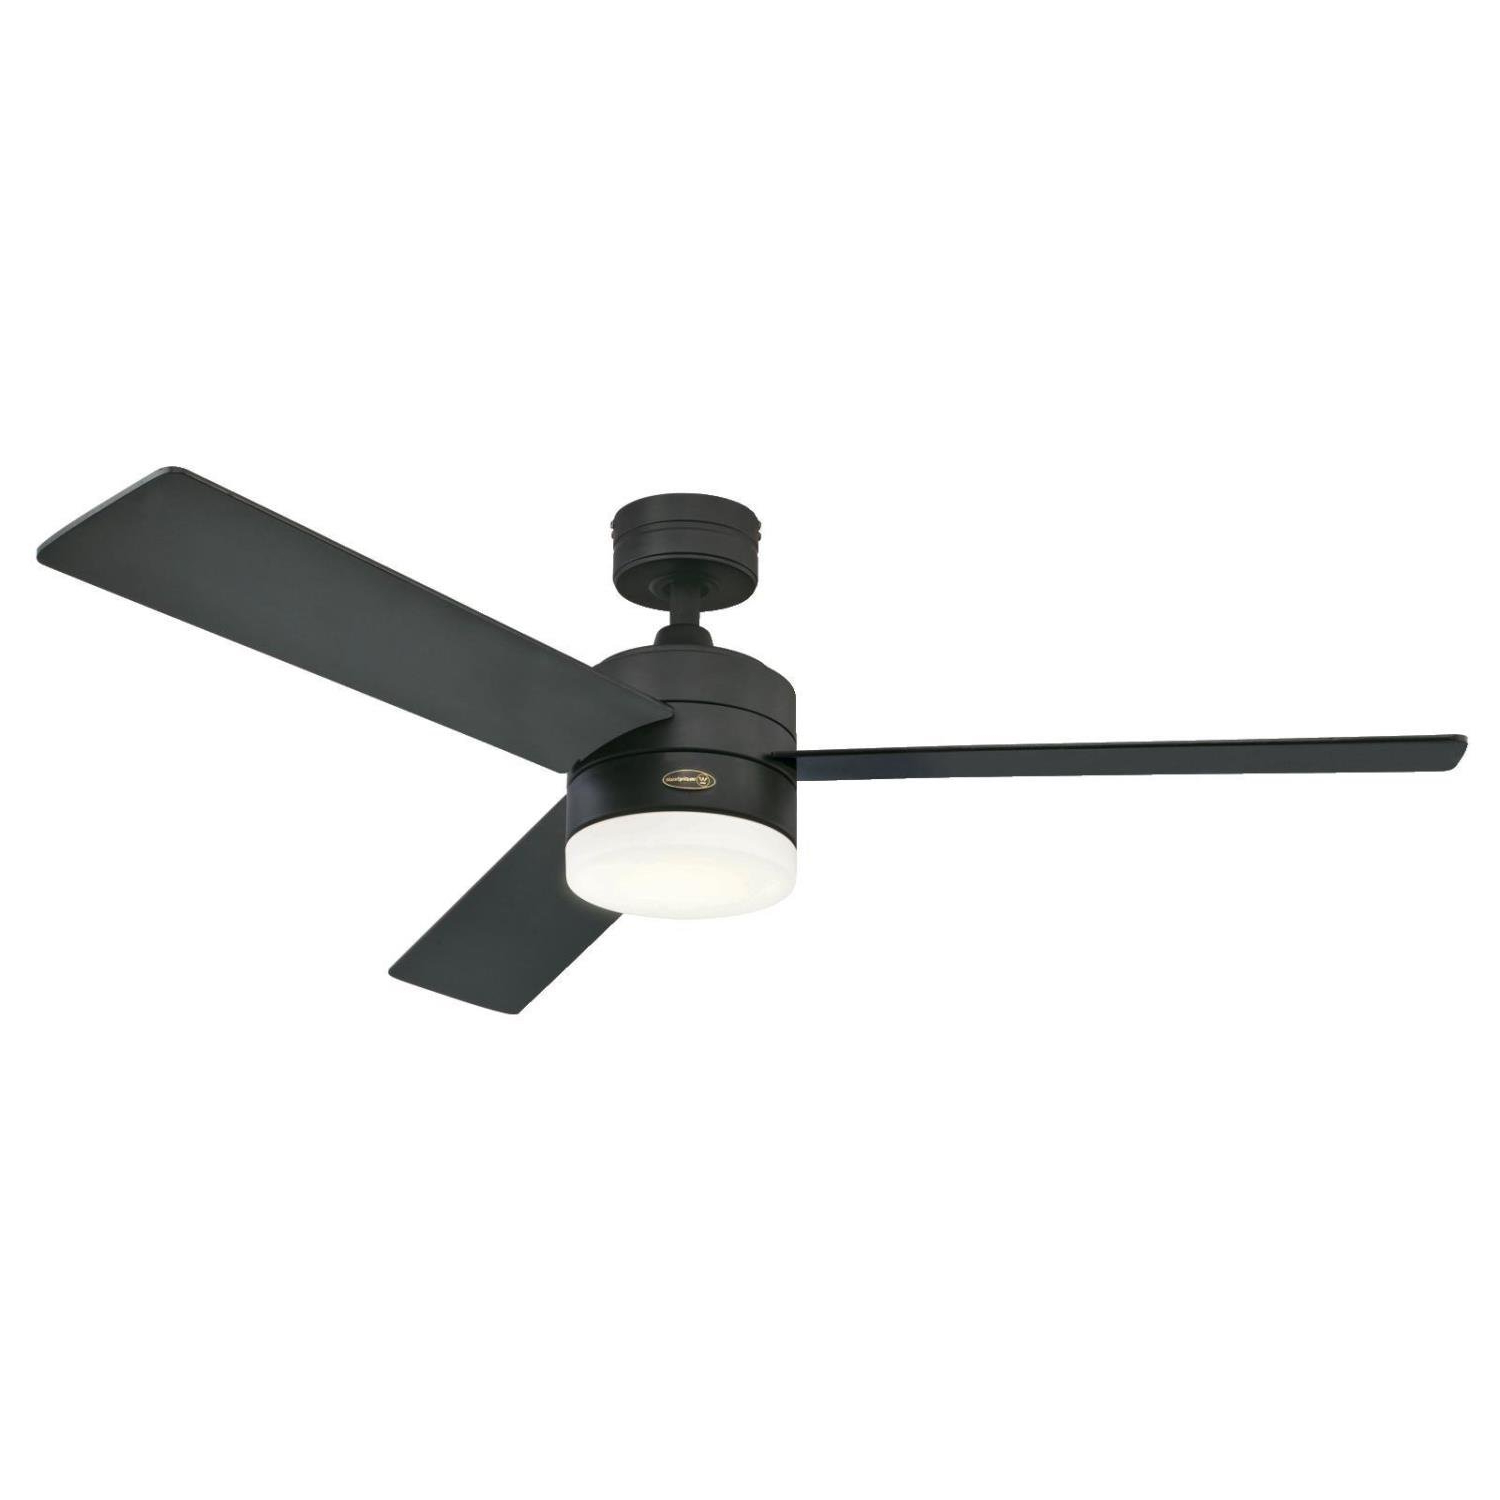 "52"" Luray 3 Blade Ceiling Fan With Remote, Light Kit Included Within Widely Used Calkins 5 Blade Ceiling Fans (View 17 of 20)"